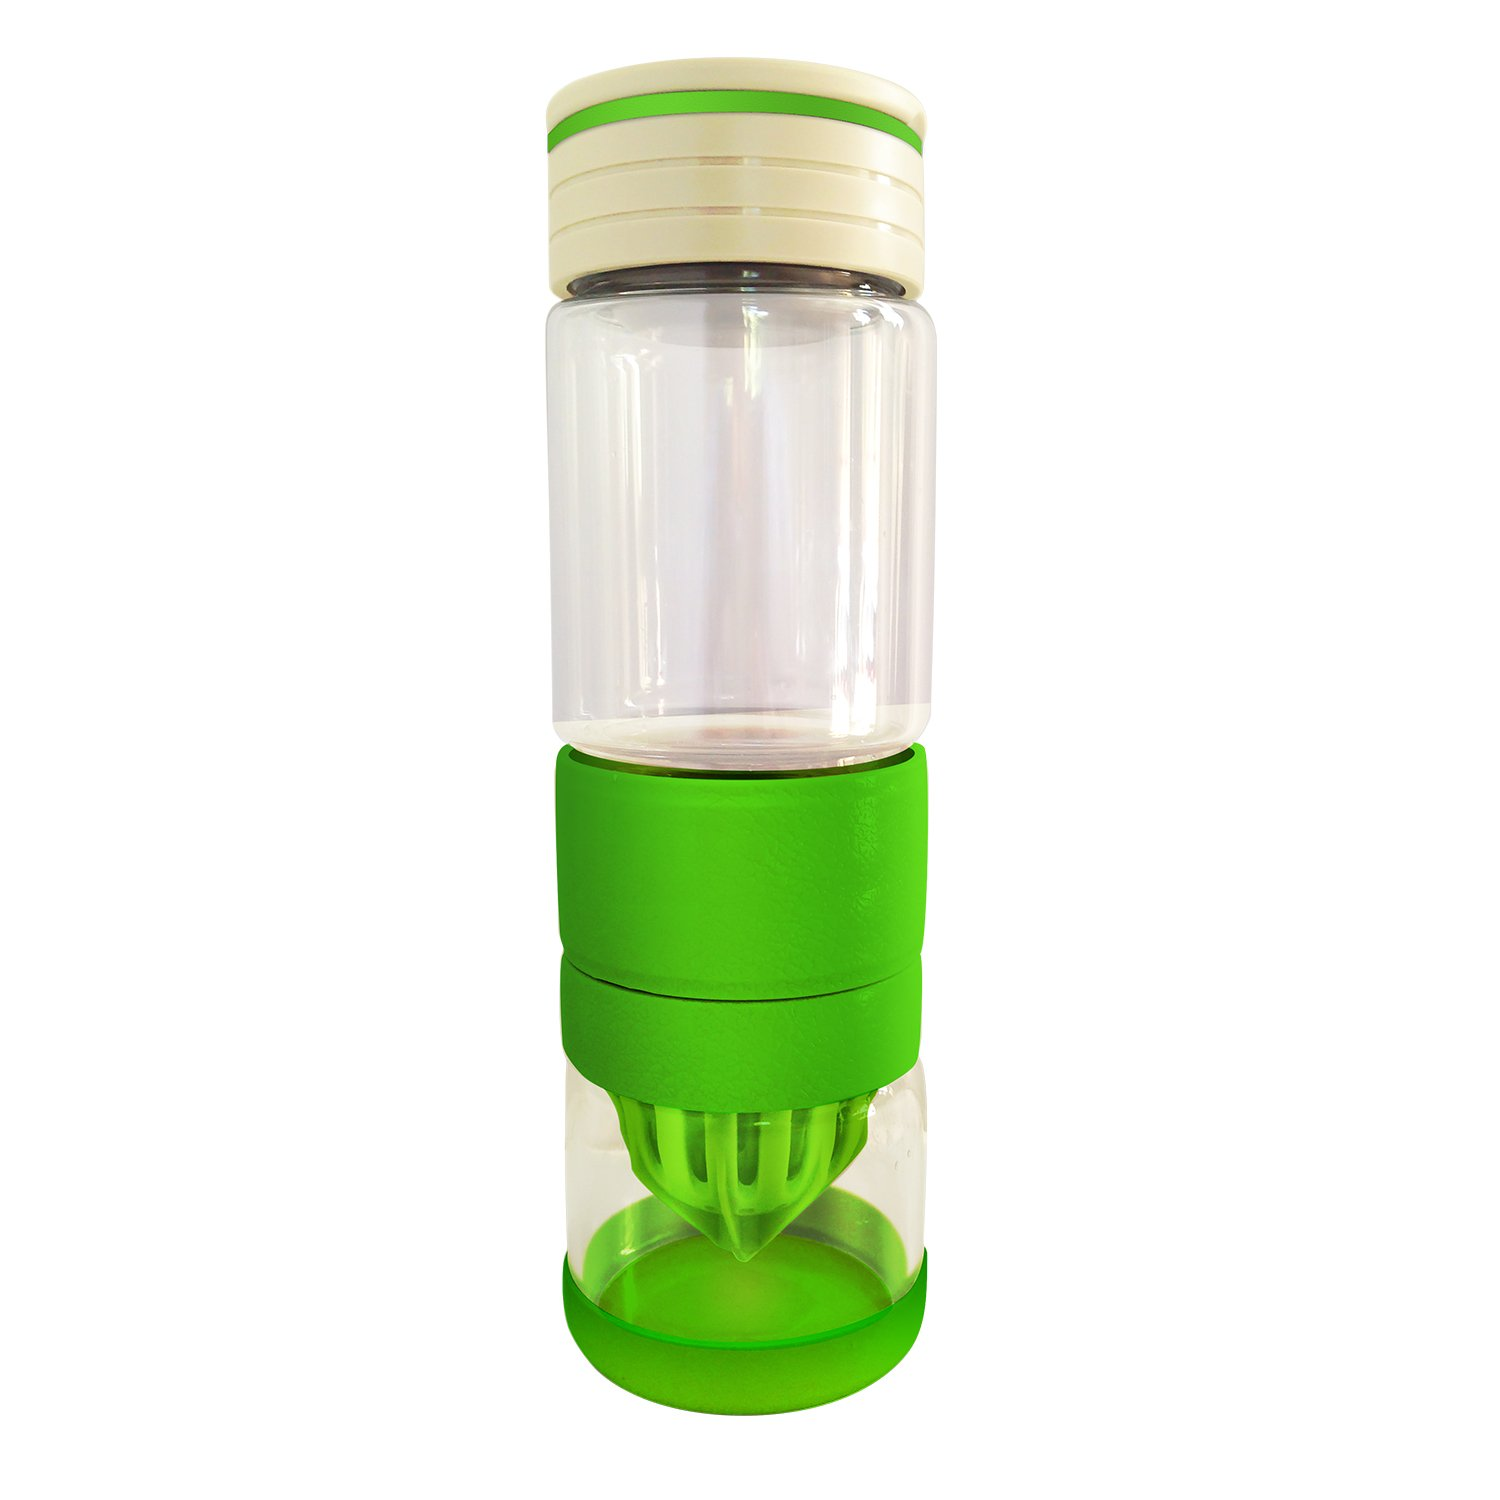 Glass Citrus Juicer Water Bottle: BPA-free Manual Squeezer Makes Healthy, Natural Flavored Water with Lemon, Lime, Orange, or Other Fruit. Eco-Friendly, Leak Proof, With Silicon Bumper for Protection. Fits Your Active Lifestyle!